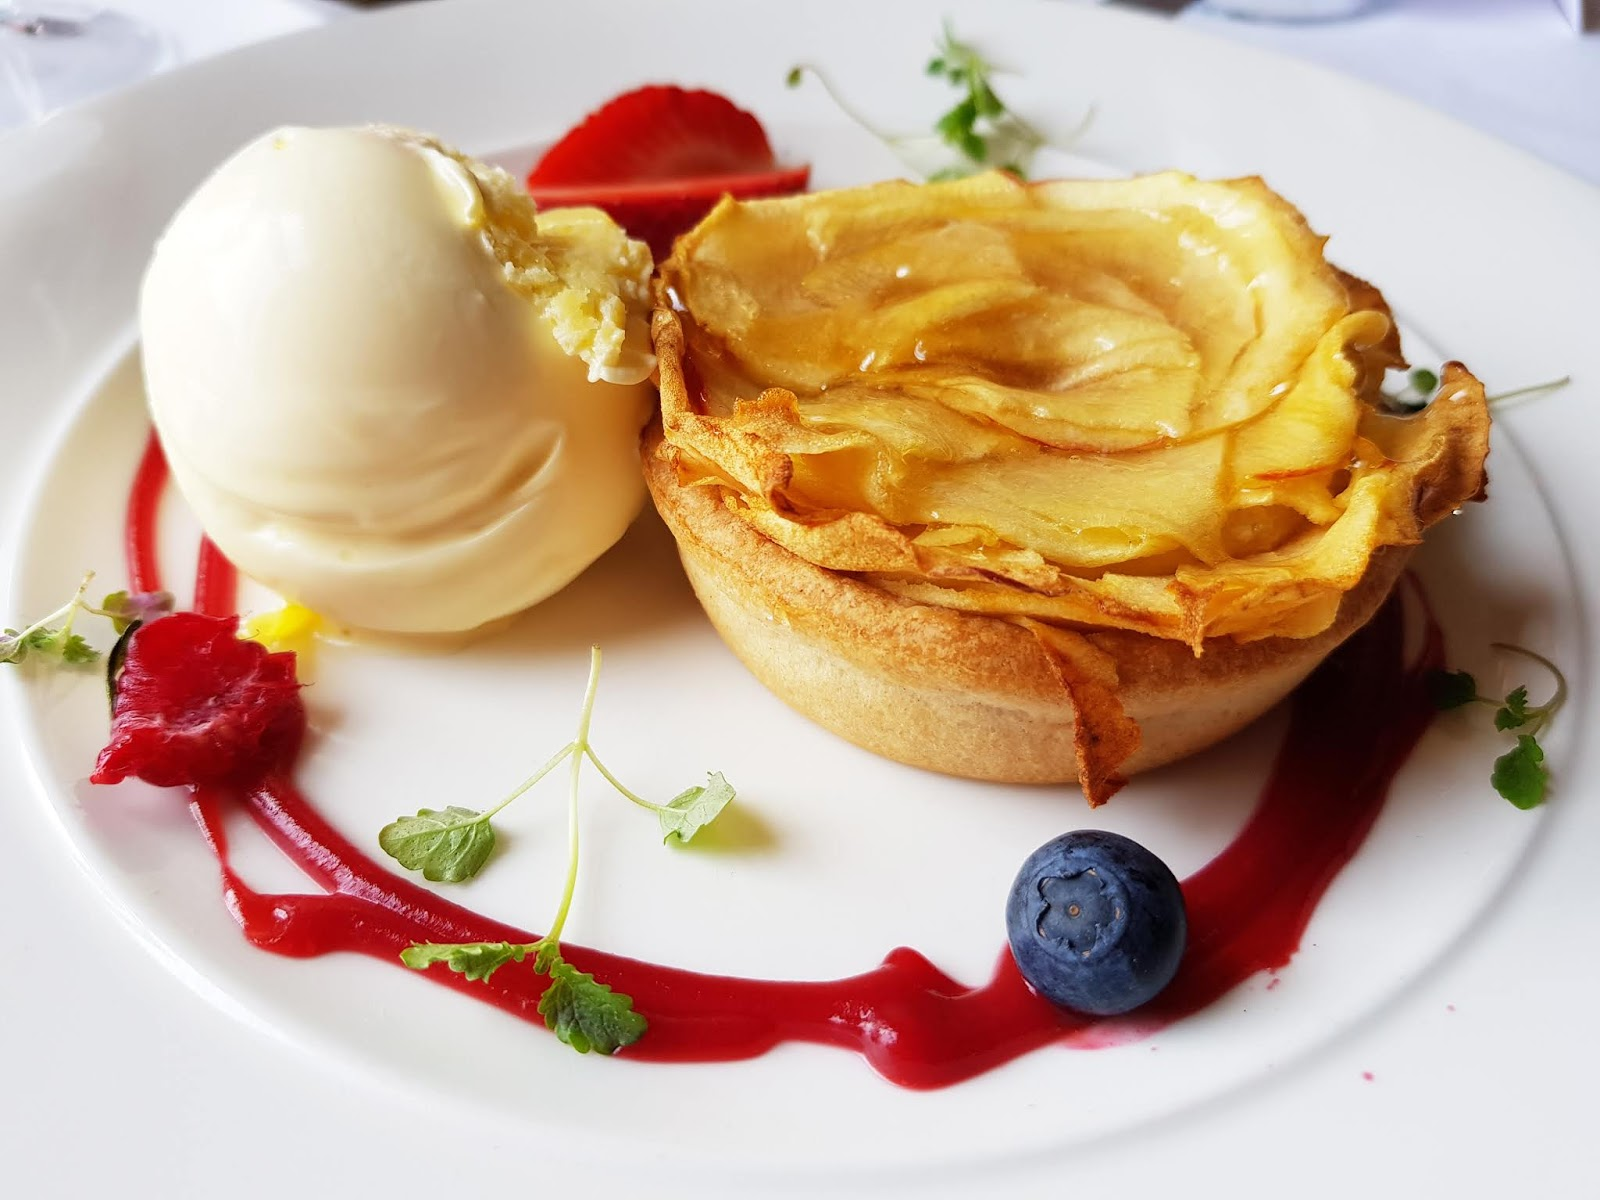 Apple tart with clotted cream